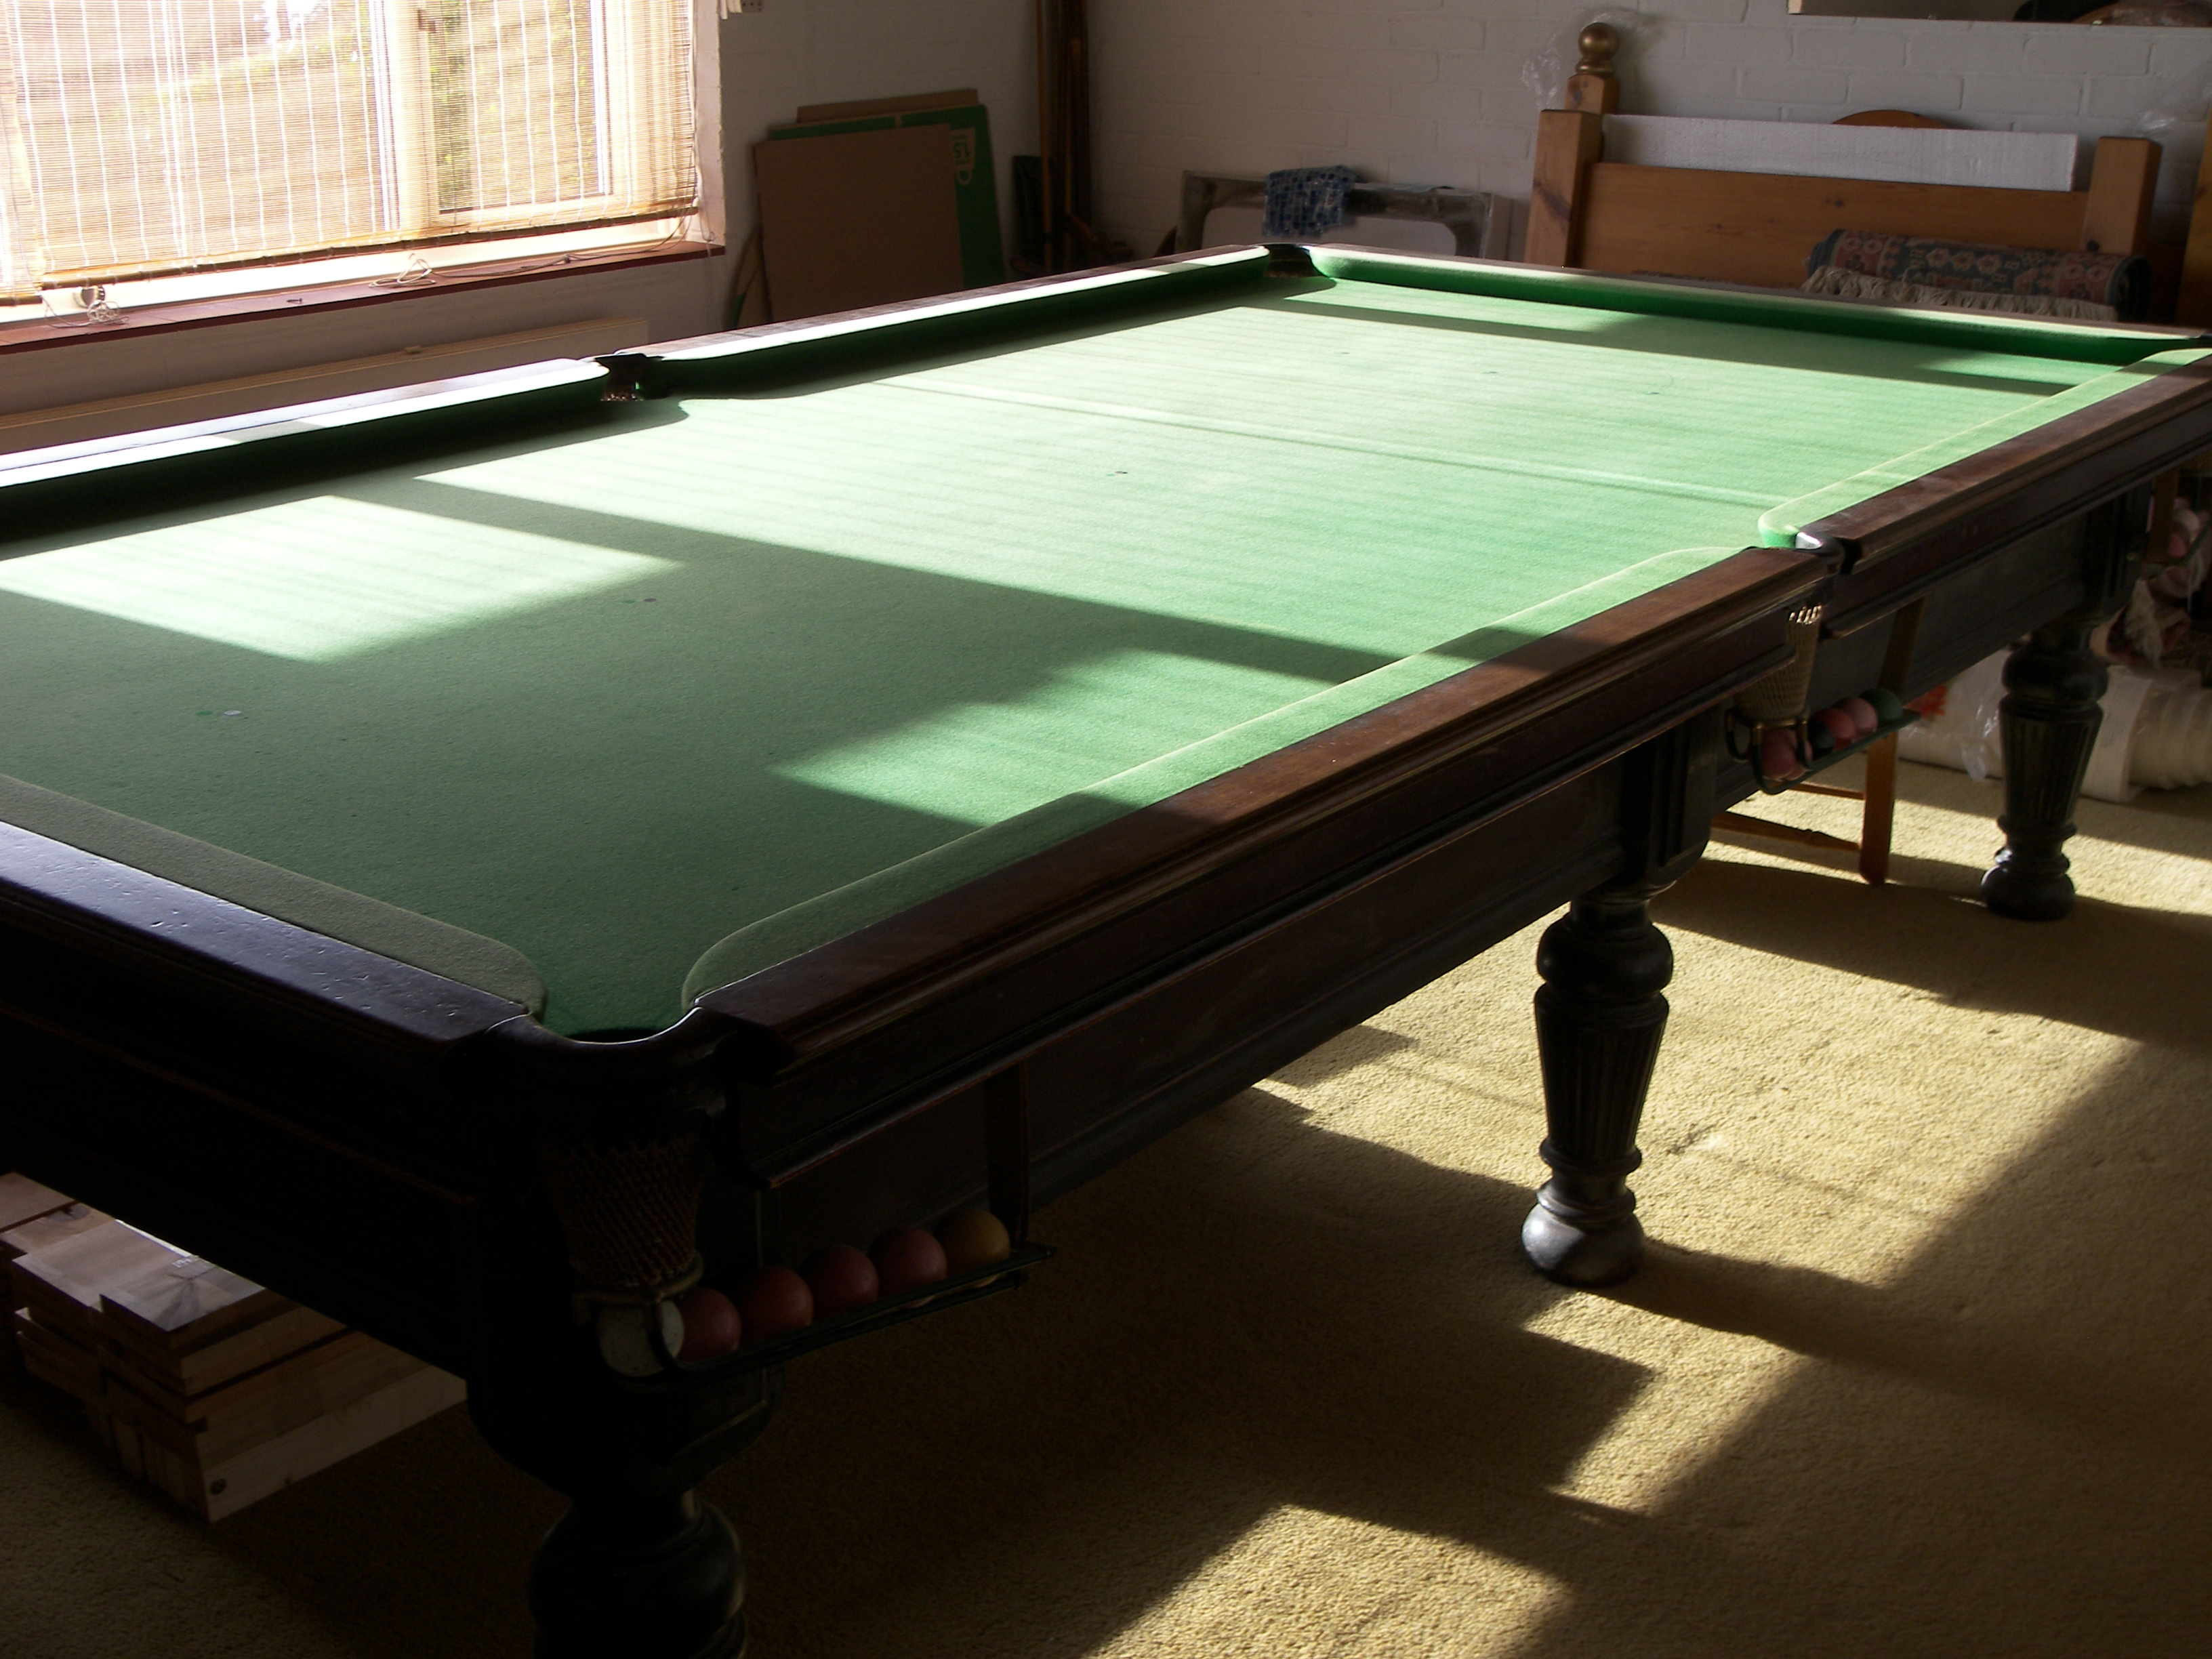 Paul Dayman 10ft snooker table